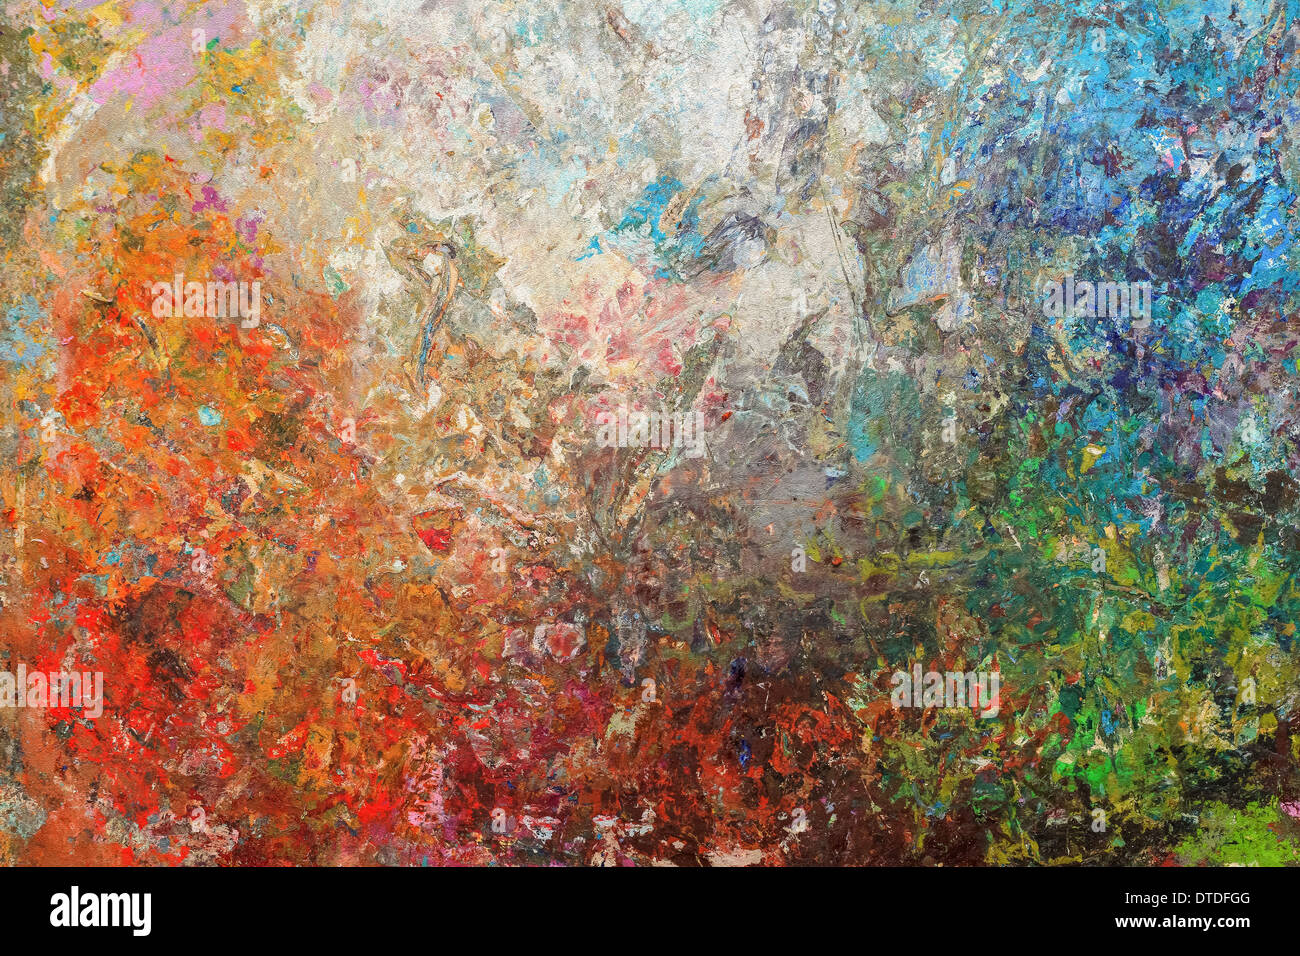 Board stained oil painting, abstract background - Stock Image